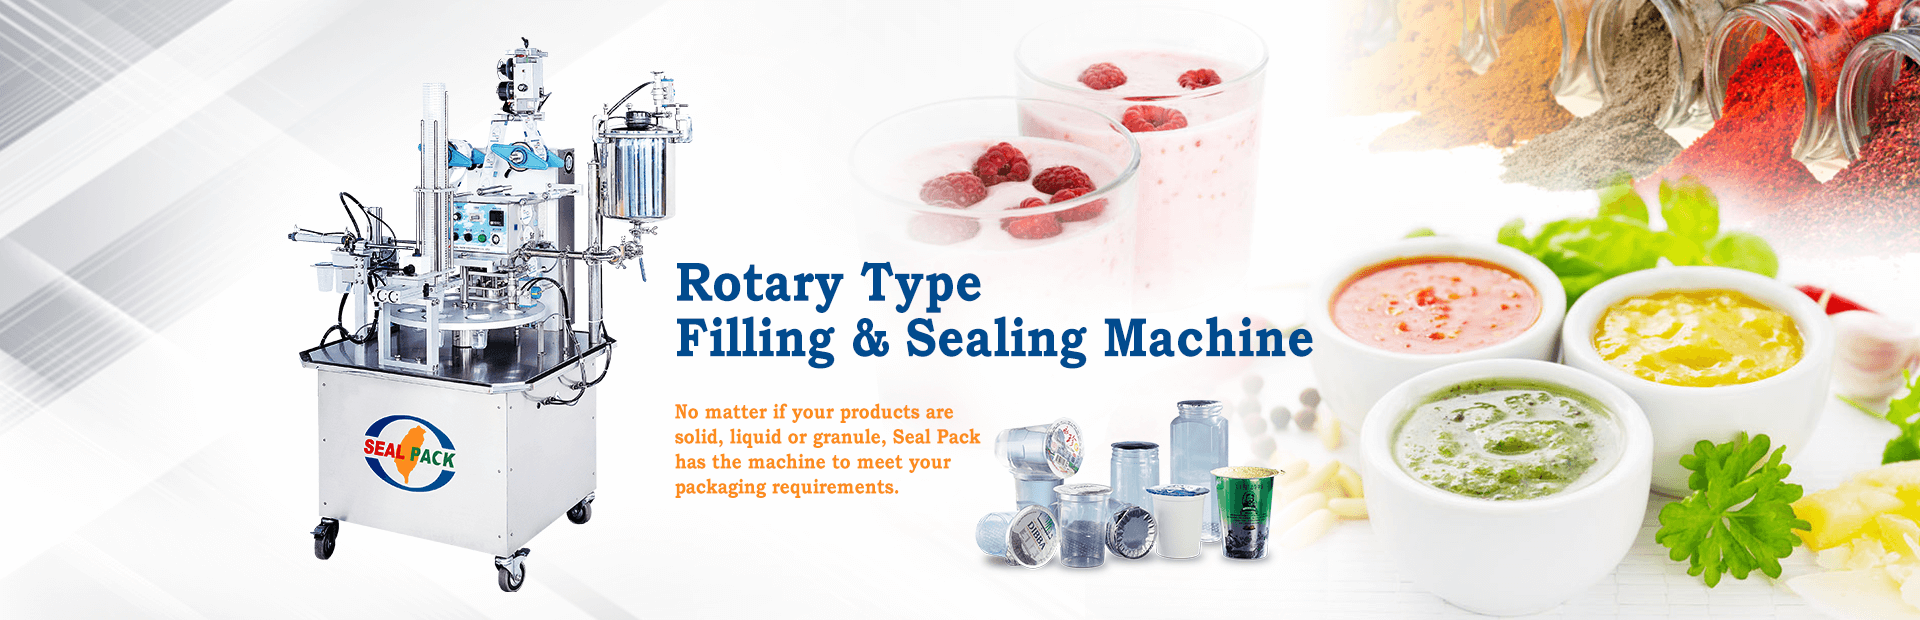 Seal Pack Technology - Professional Manufacturer of Customize Filling Machine and Sealing Machines